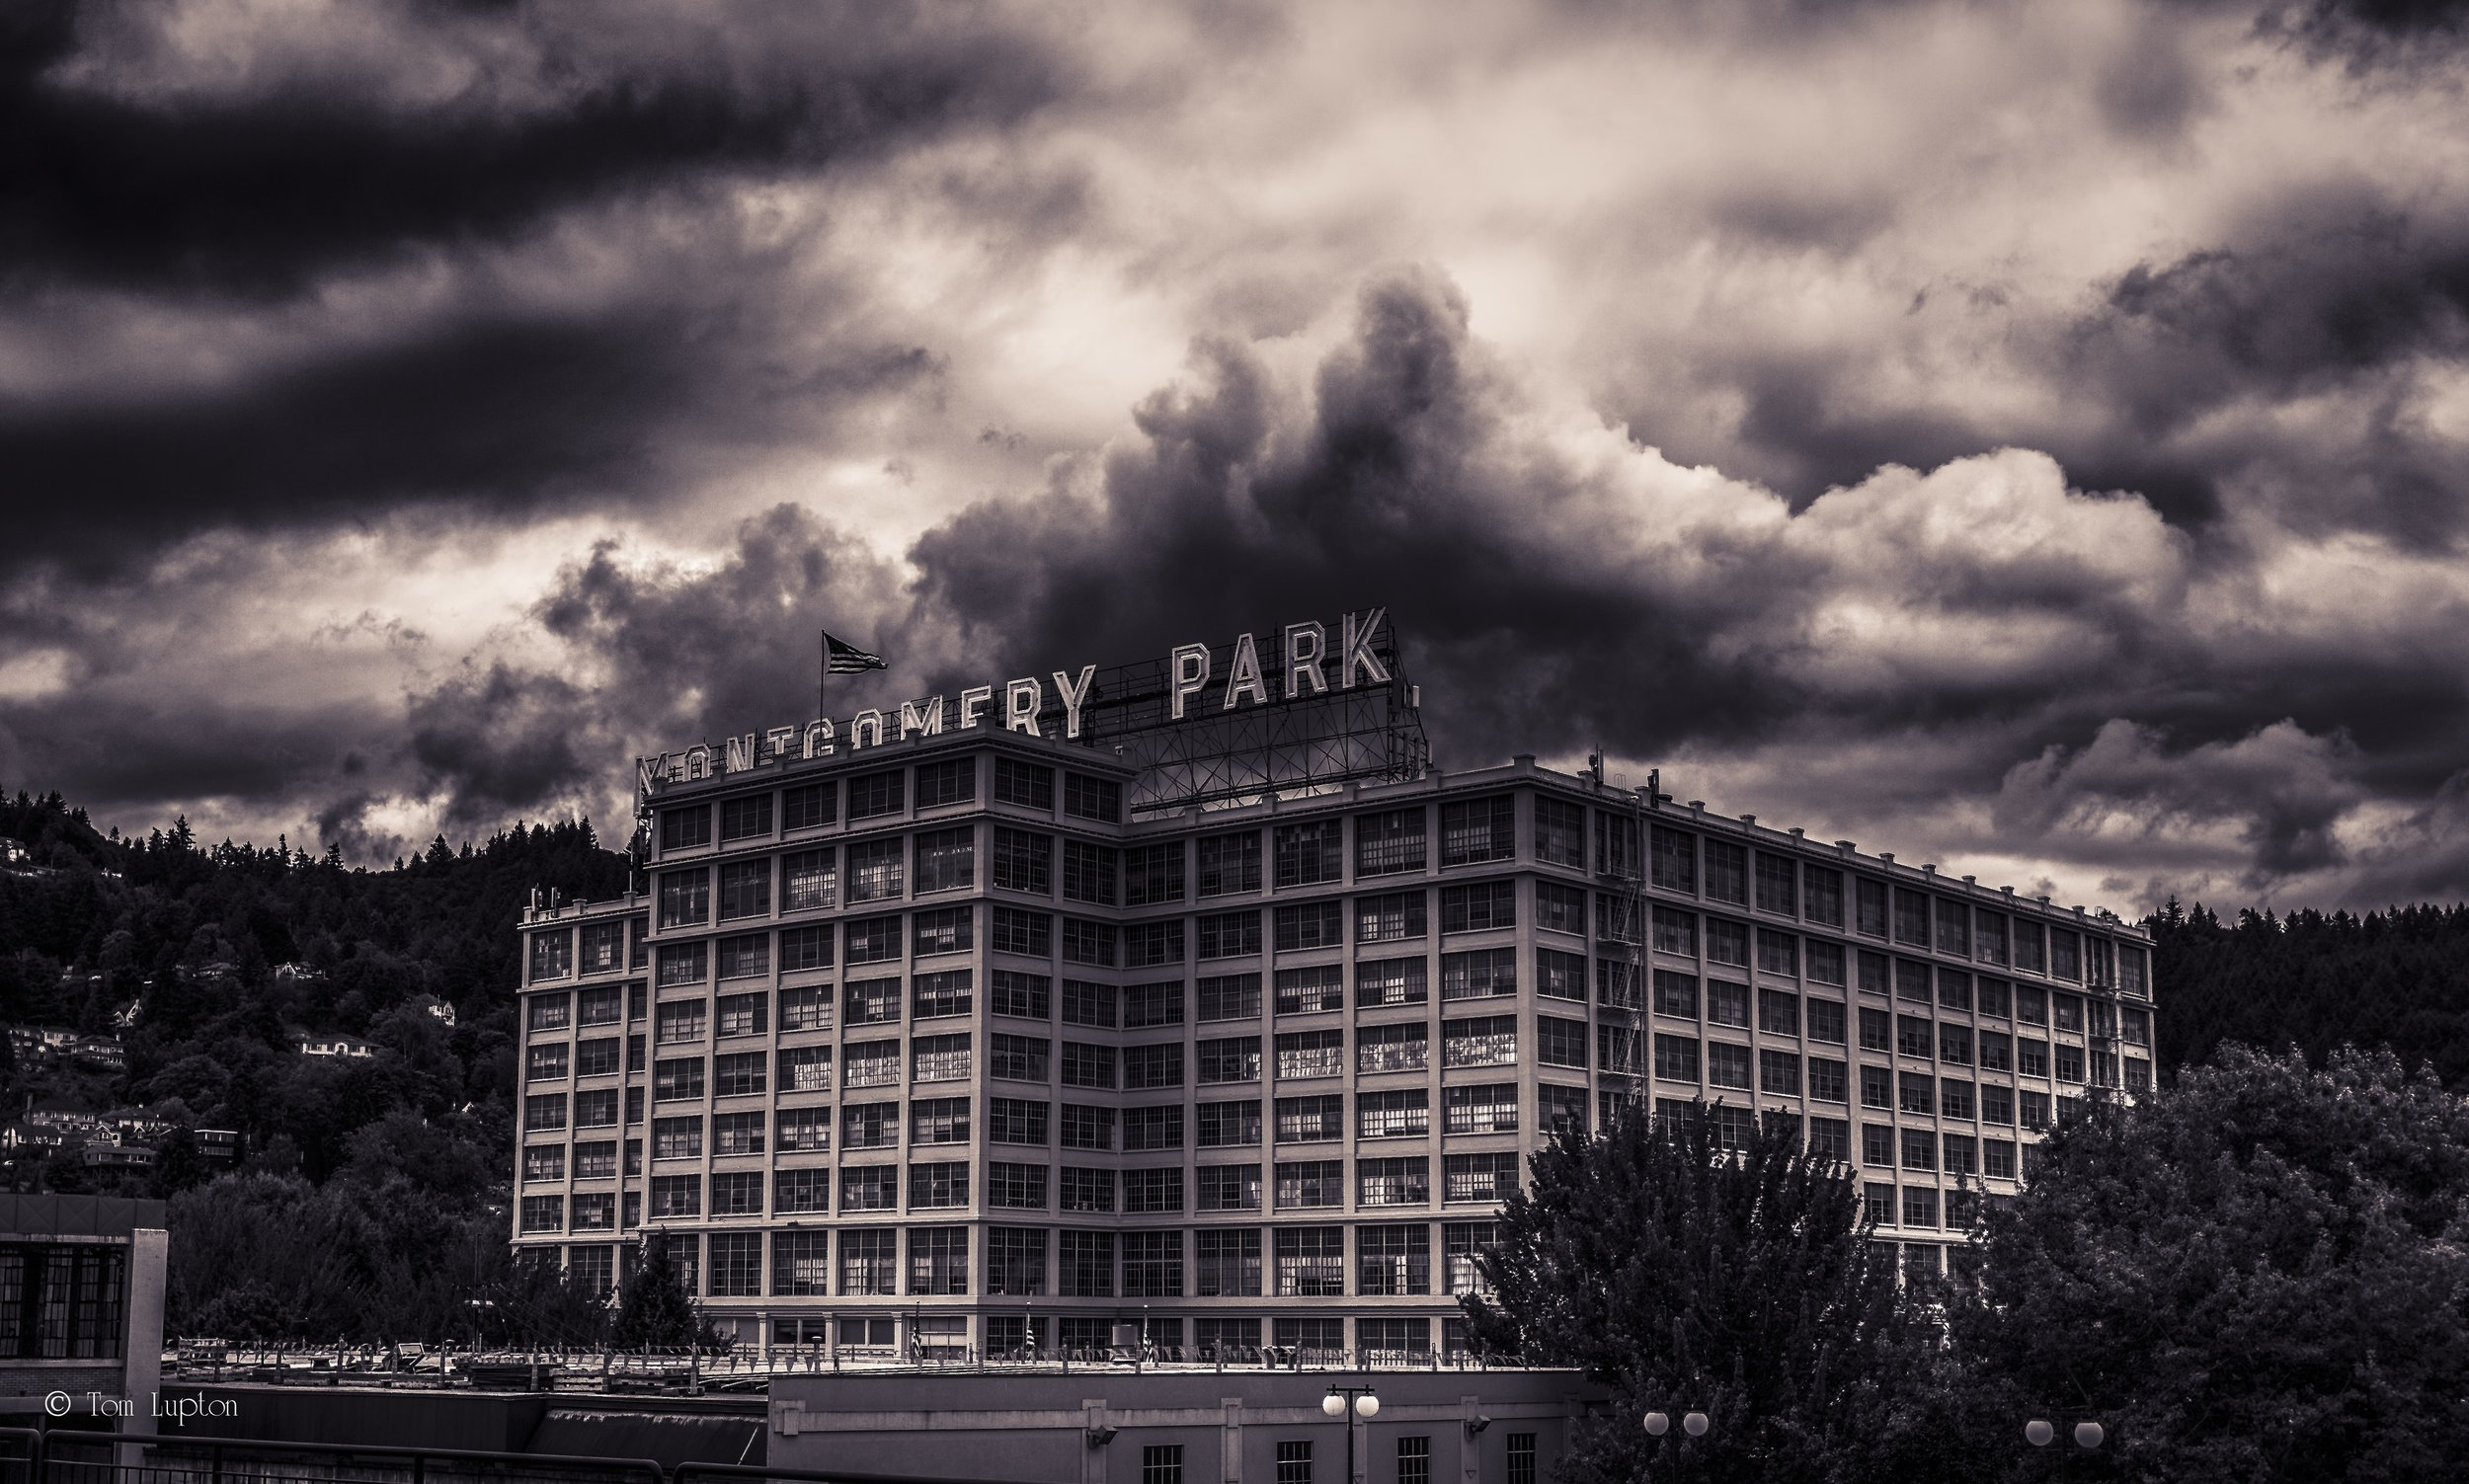 Tom_Lupton_Photography_Montgomery_Park.jpg